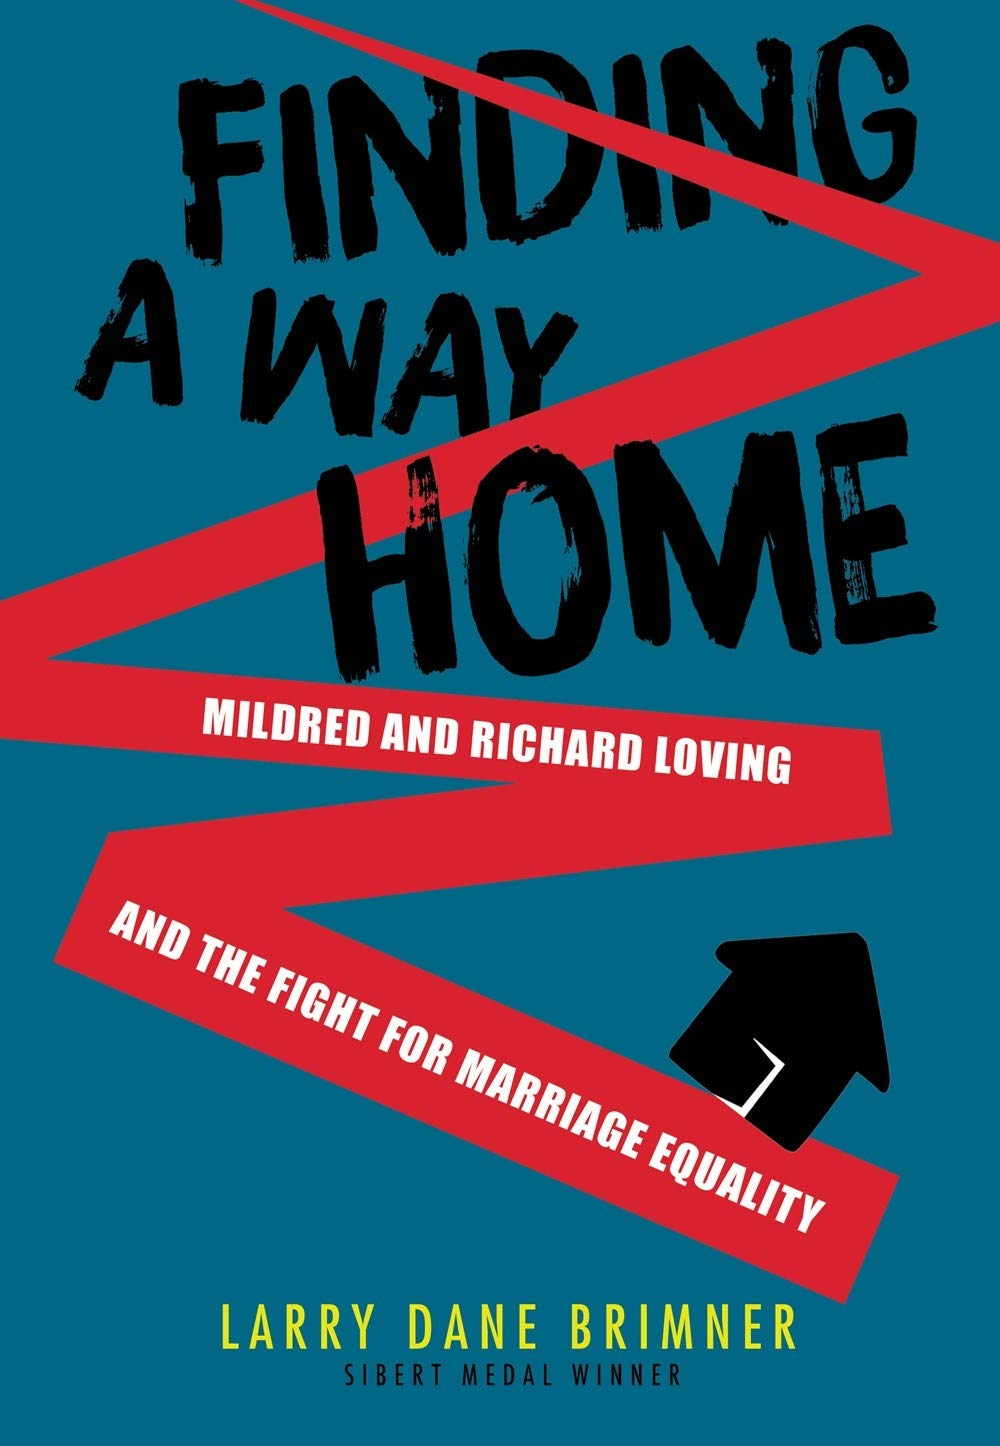 Finding a Way Home: Mildred and Richard Loving and the Fight for Marriage Equality